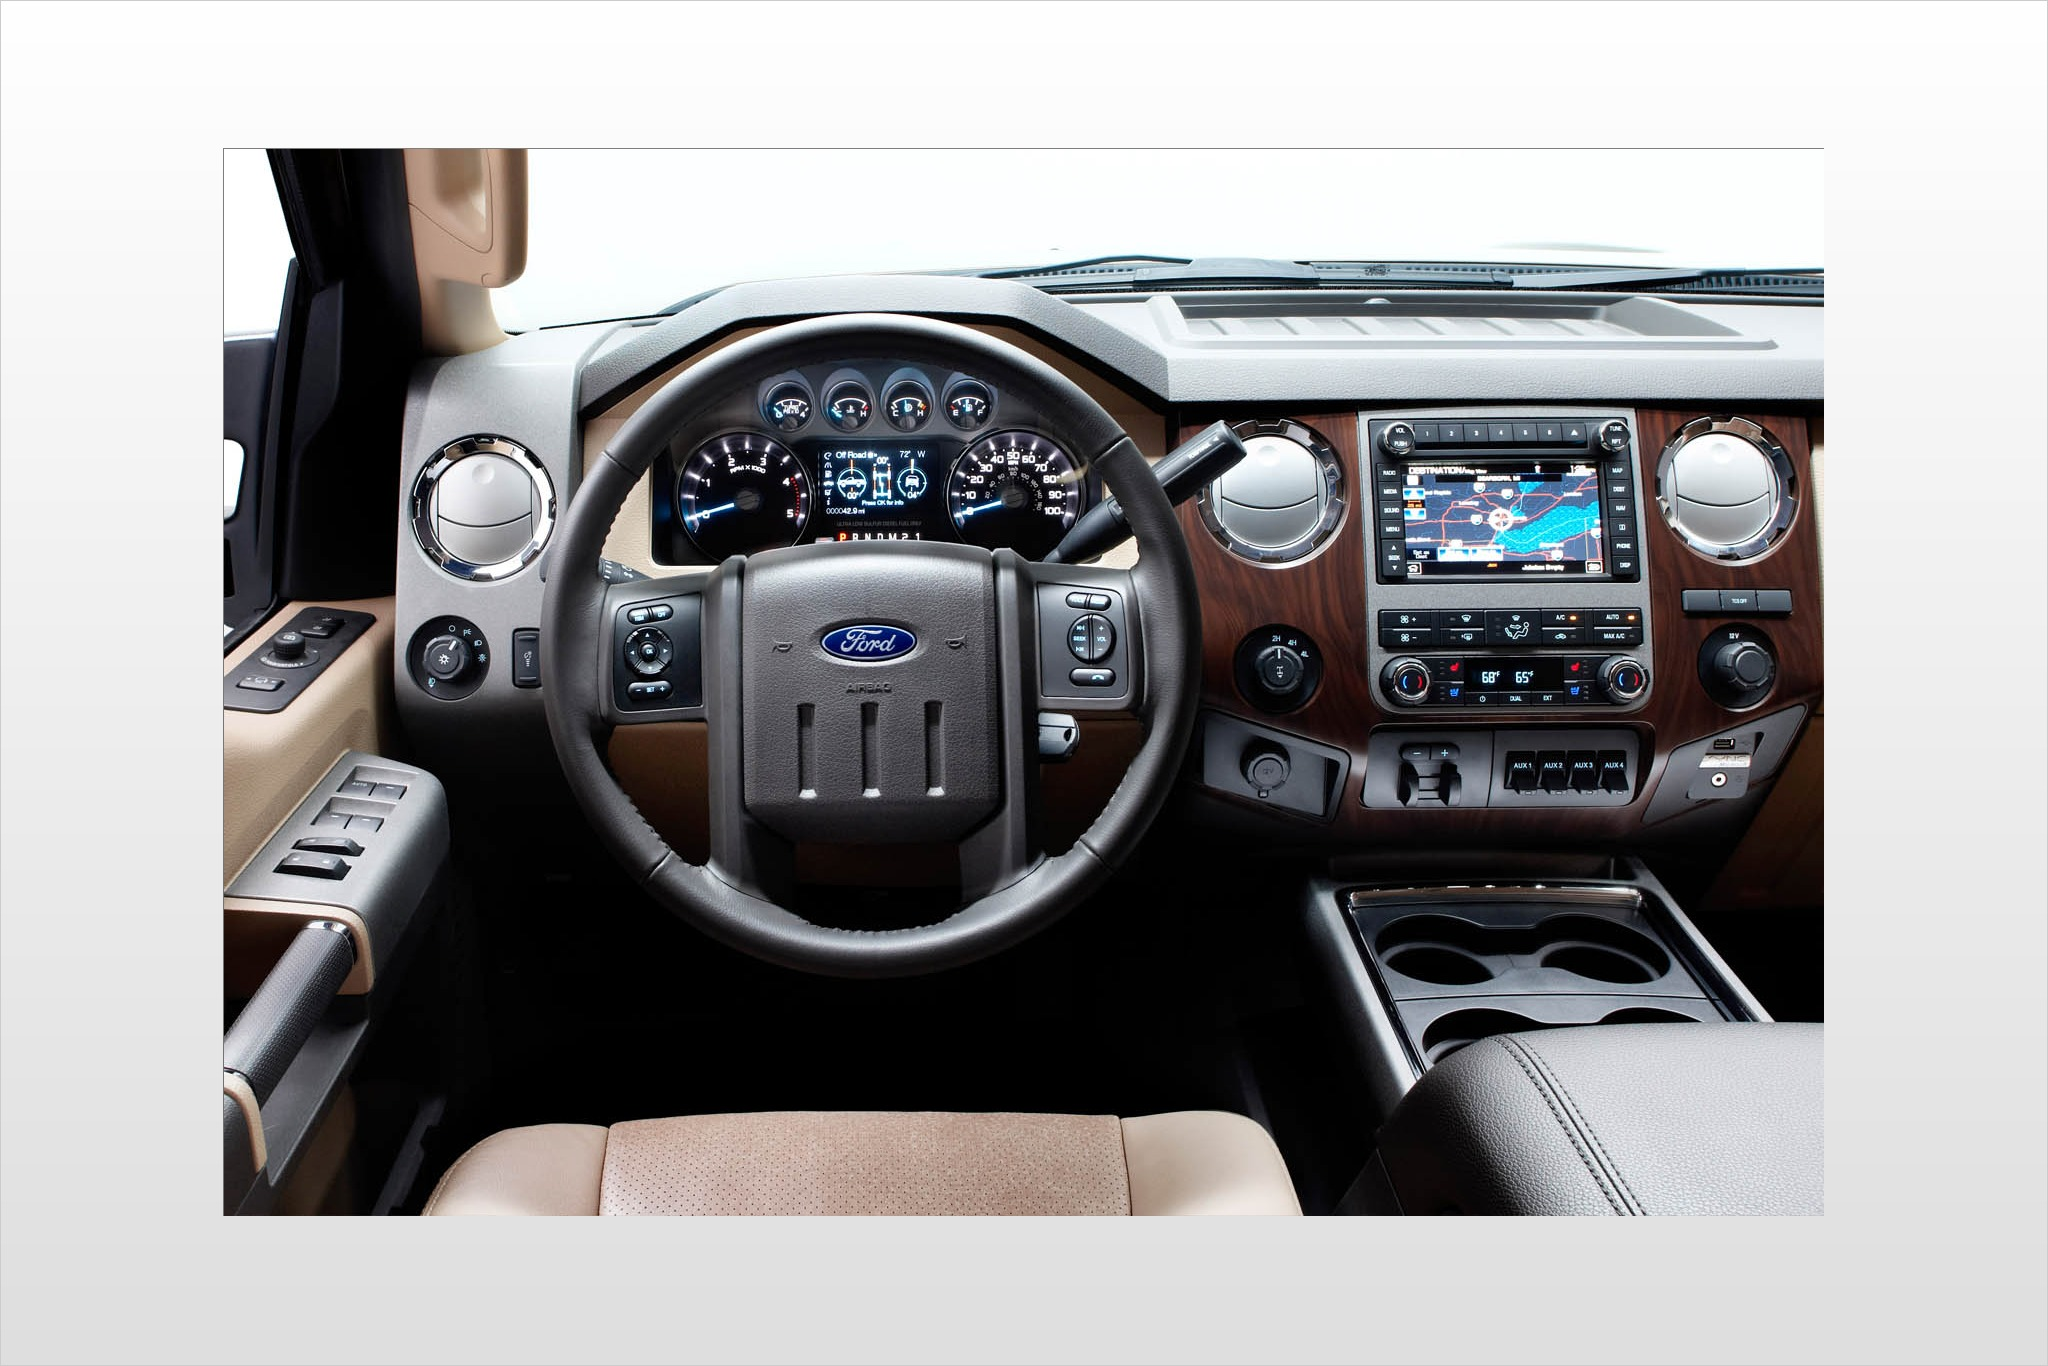 2012 Ford F-450 Super Dut interior #4